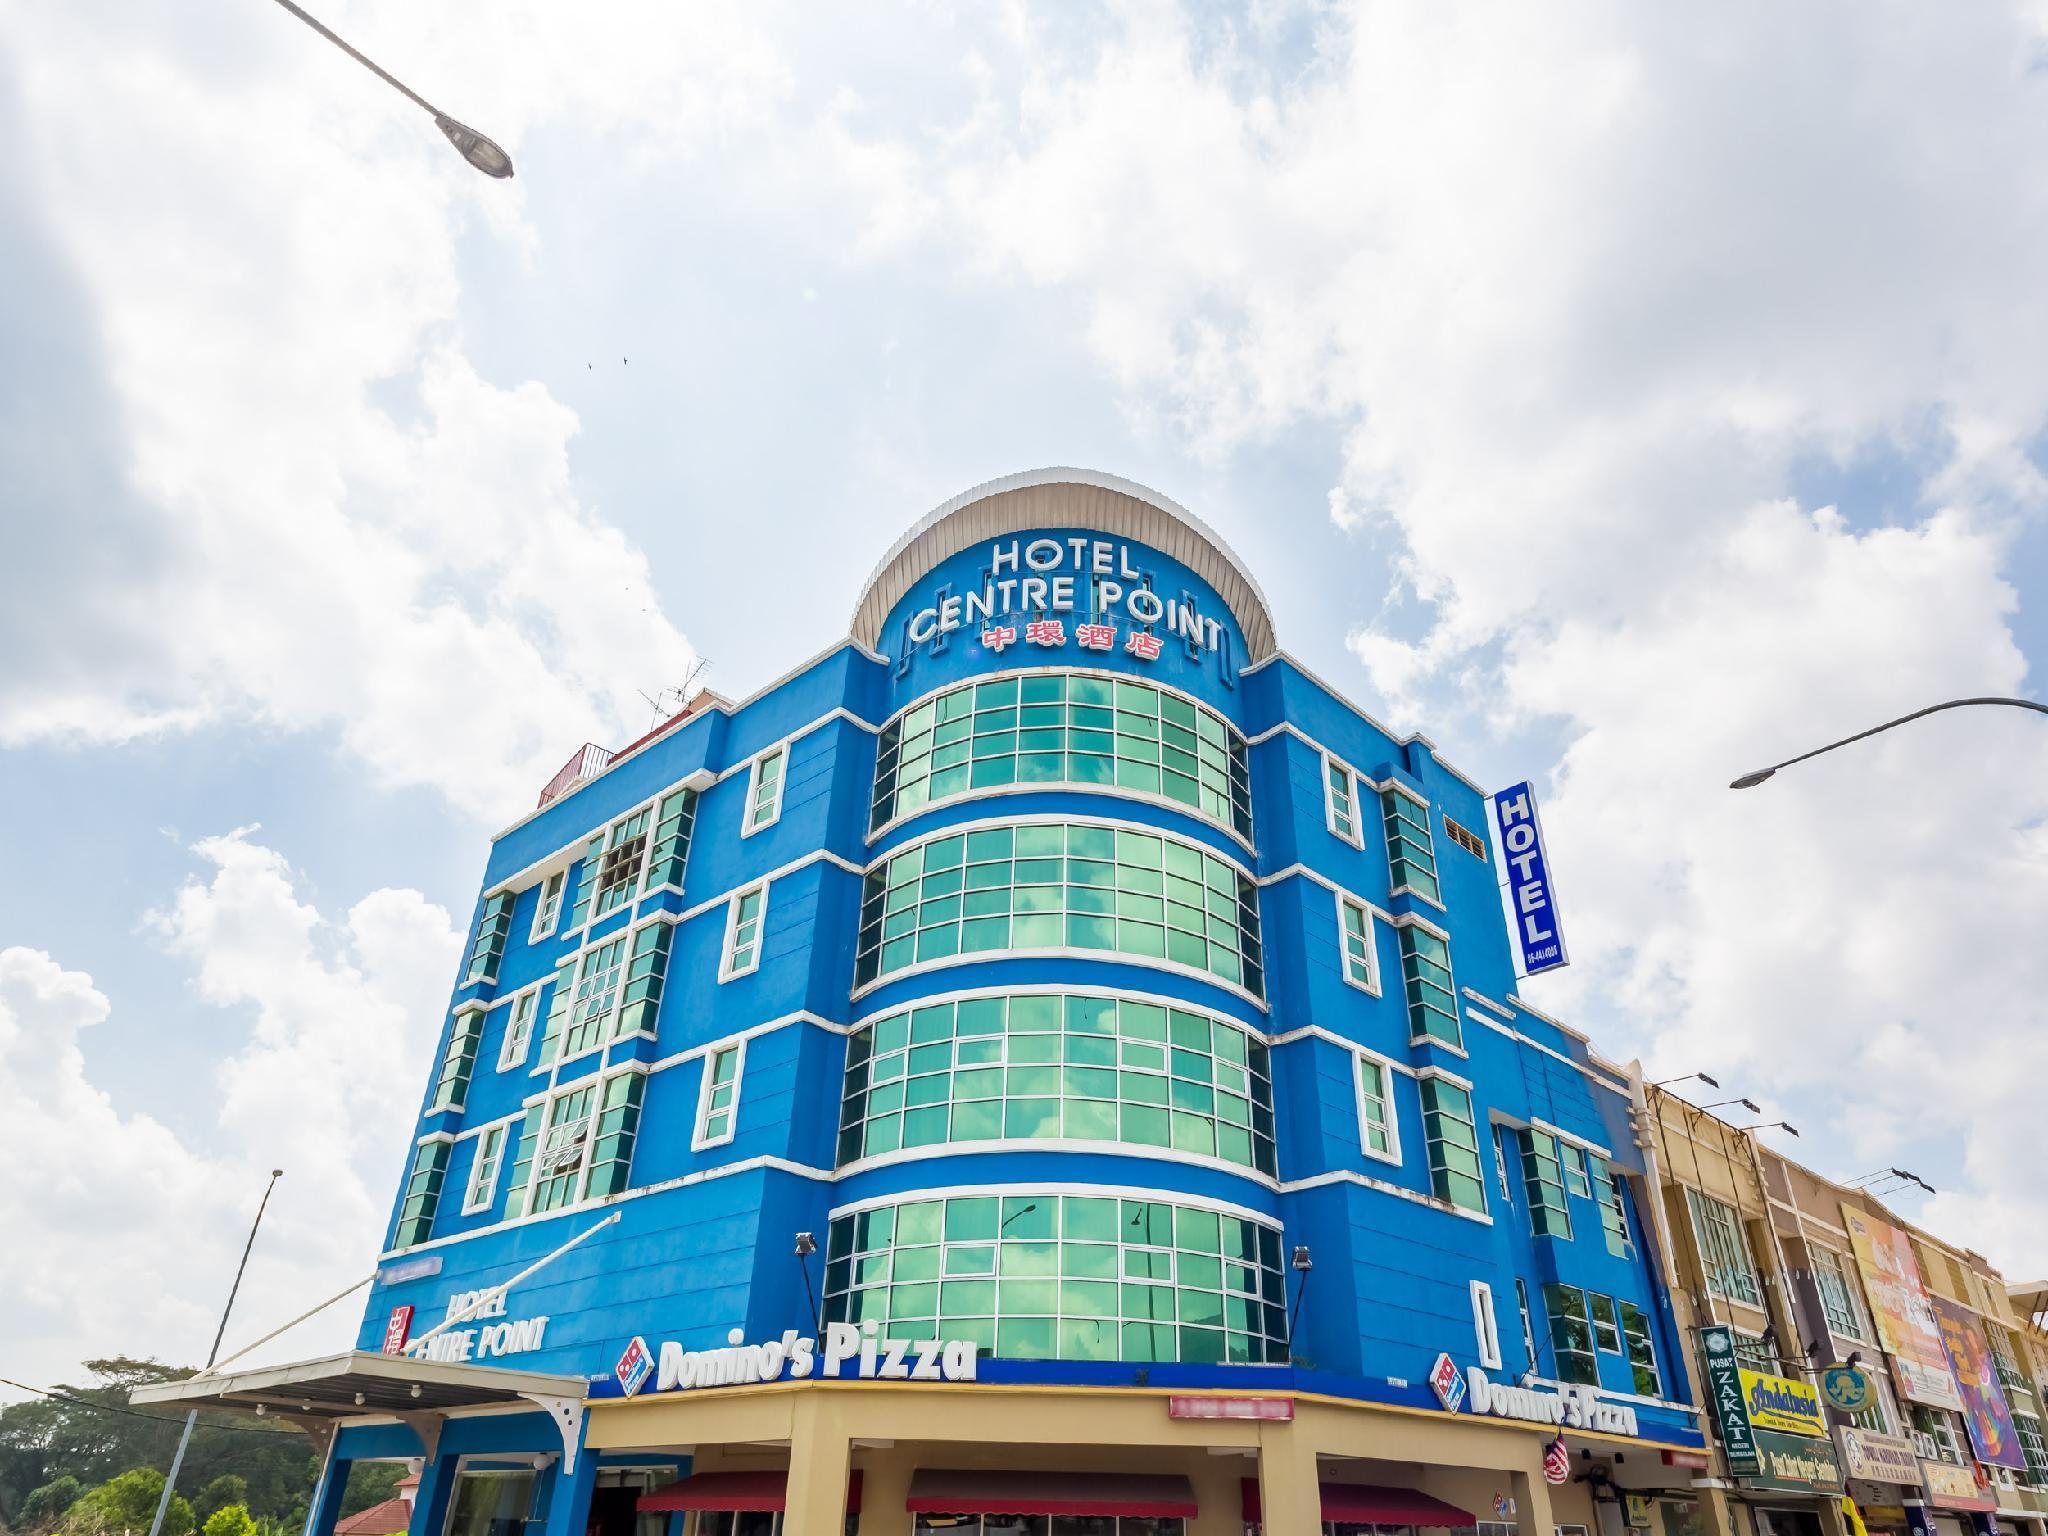 Hotel Centre Point, Tampin